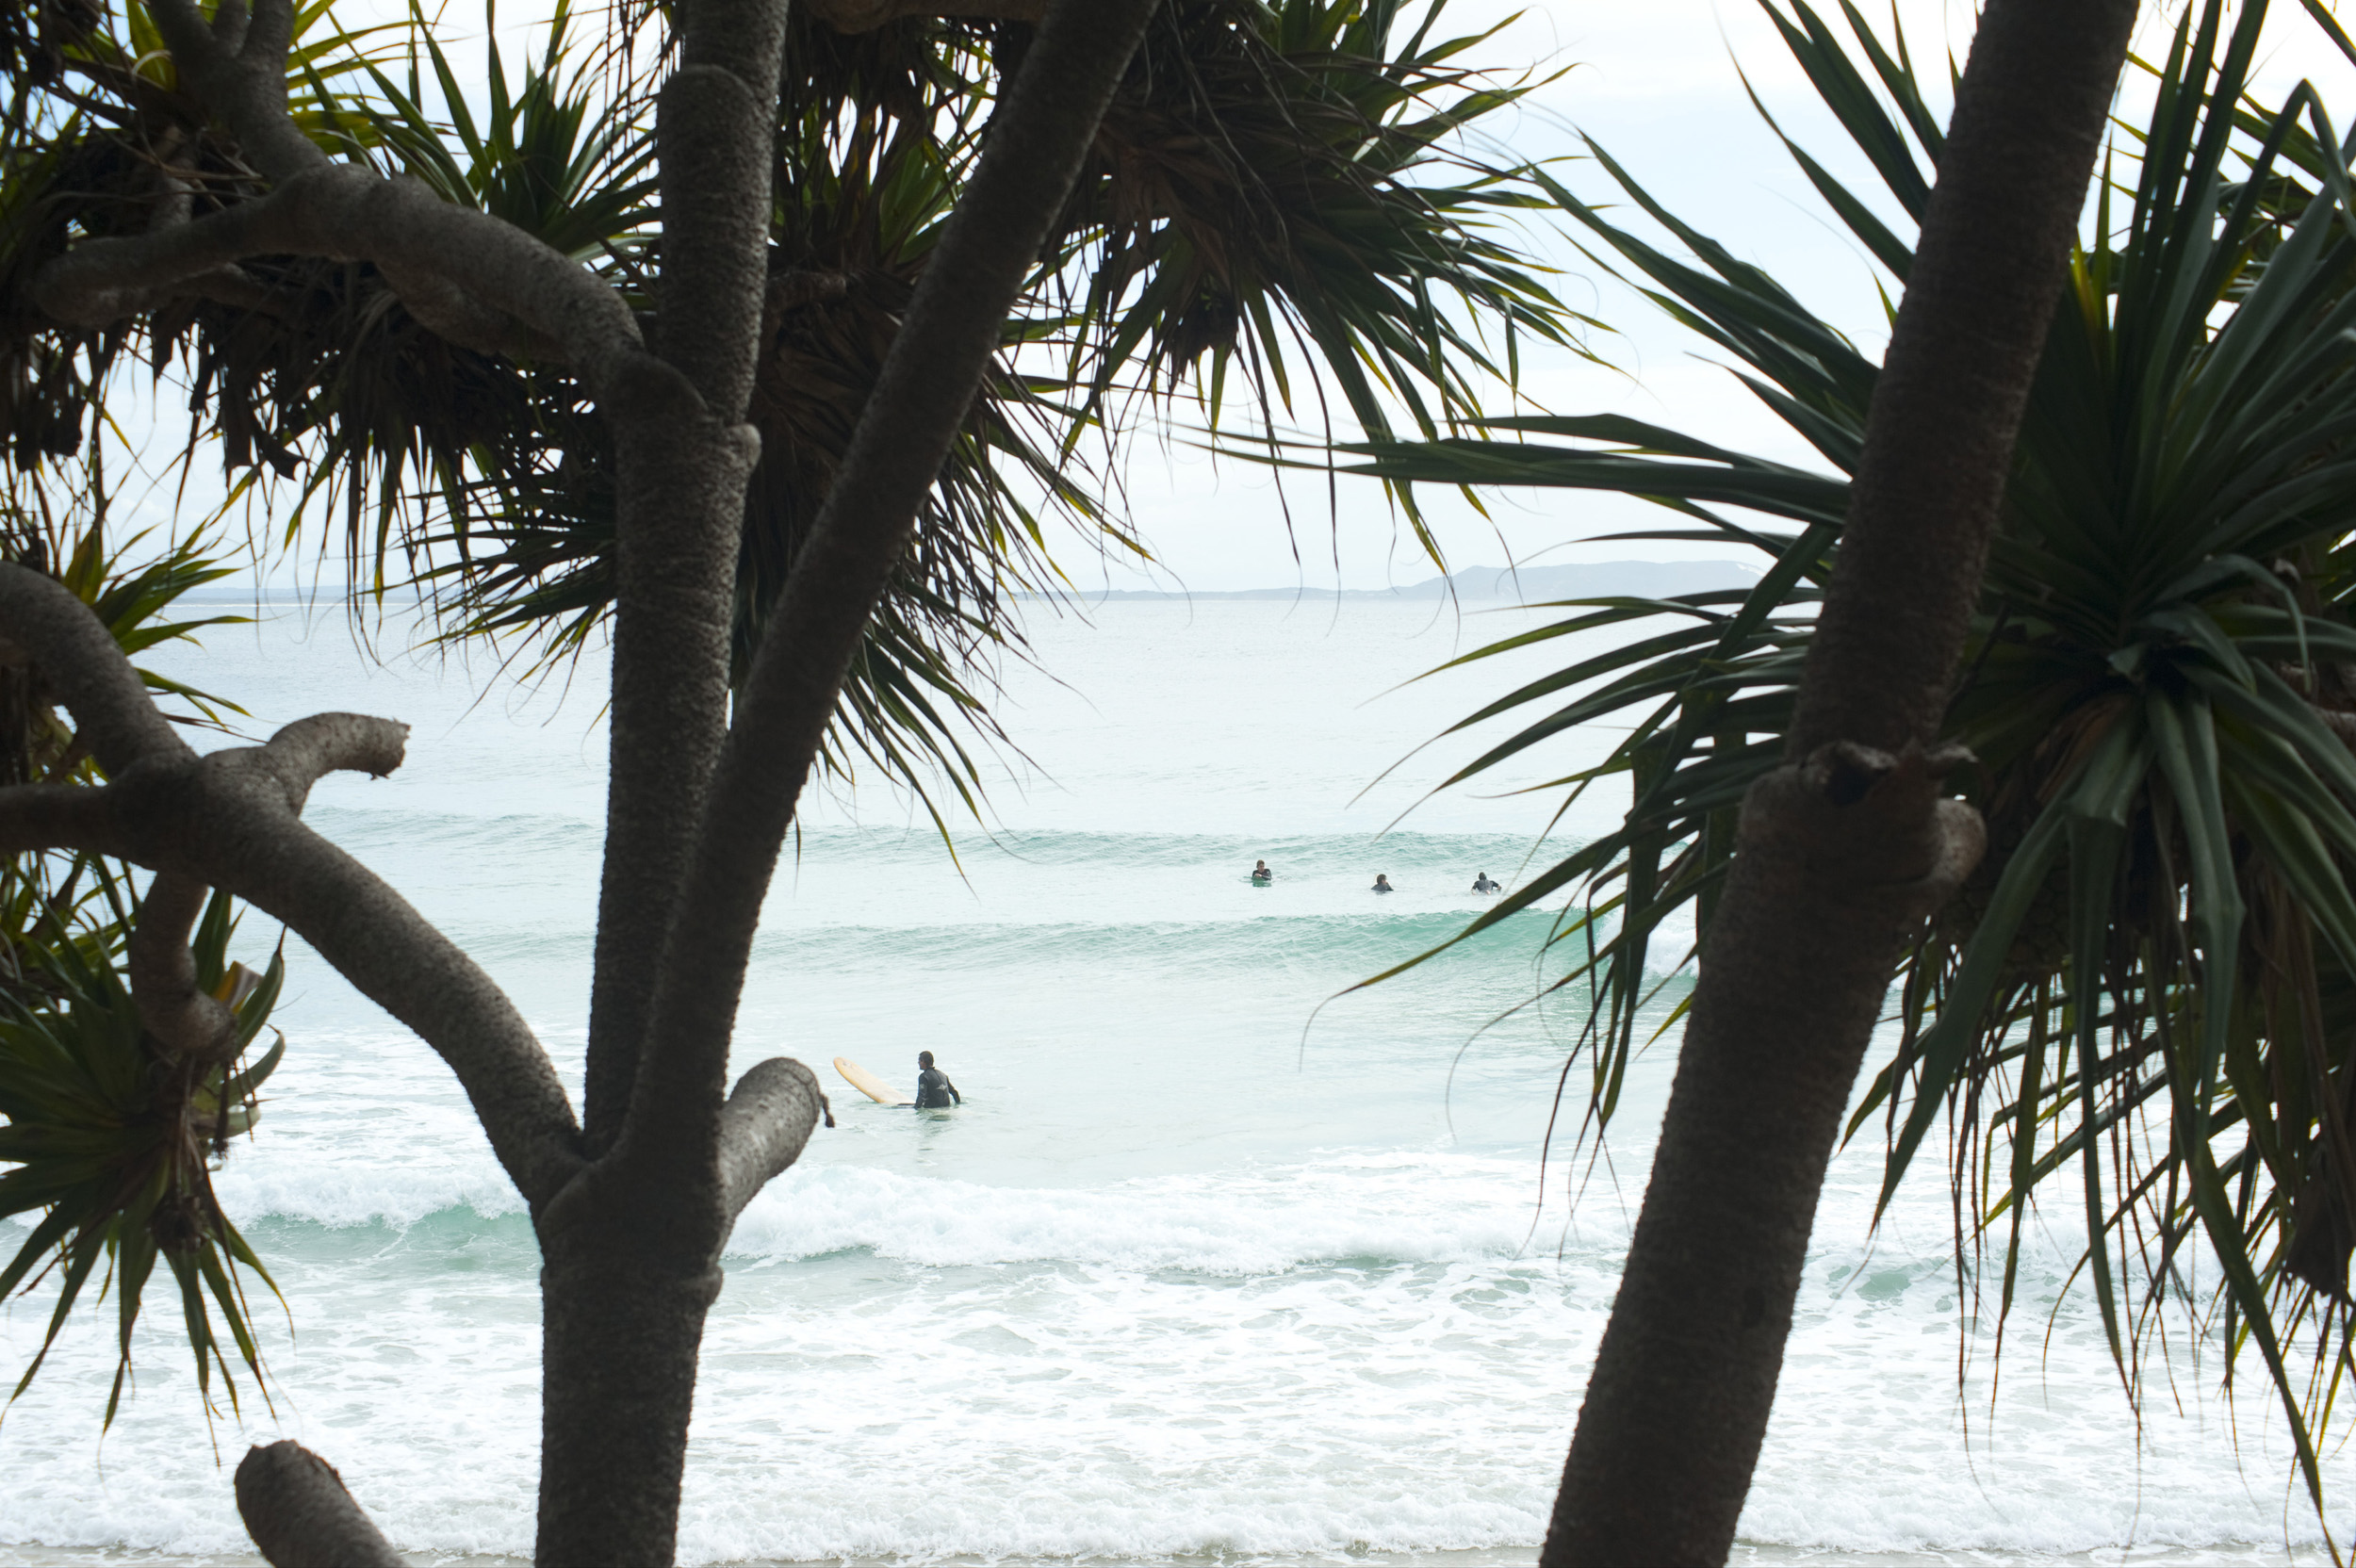 View between tropical palm trees of the beach and surf at Noosa, Queensland, Australia with surfers waiting to catch a wave